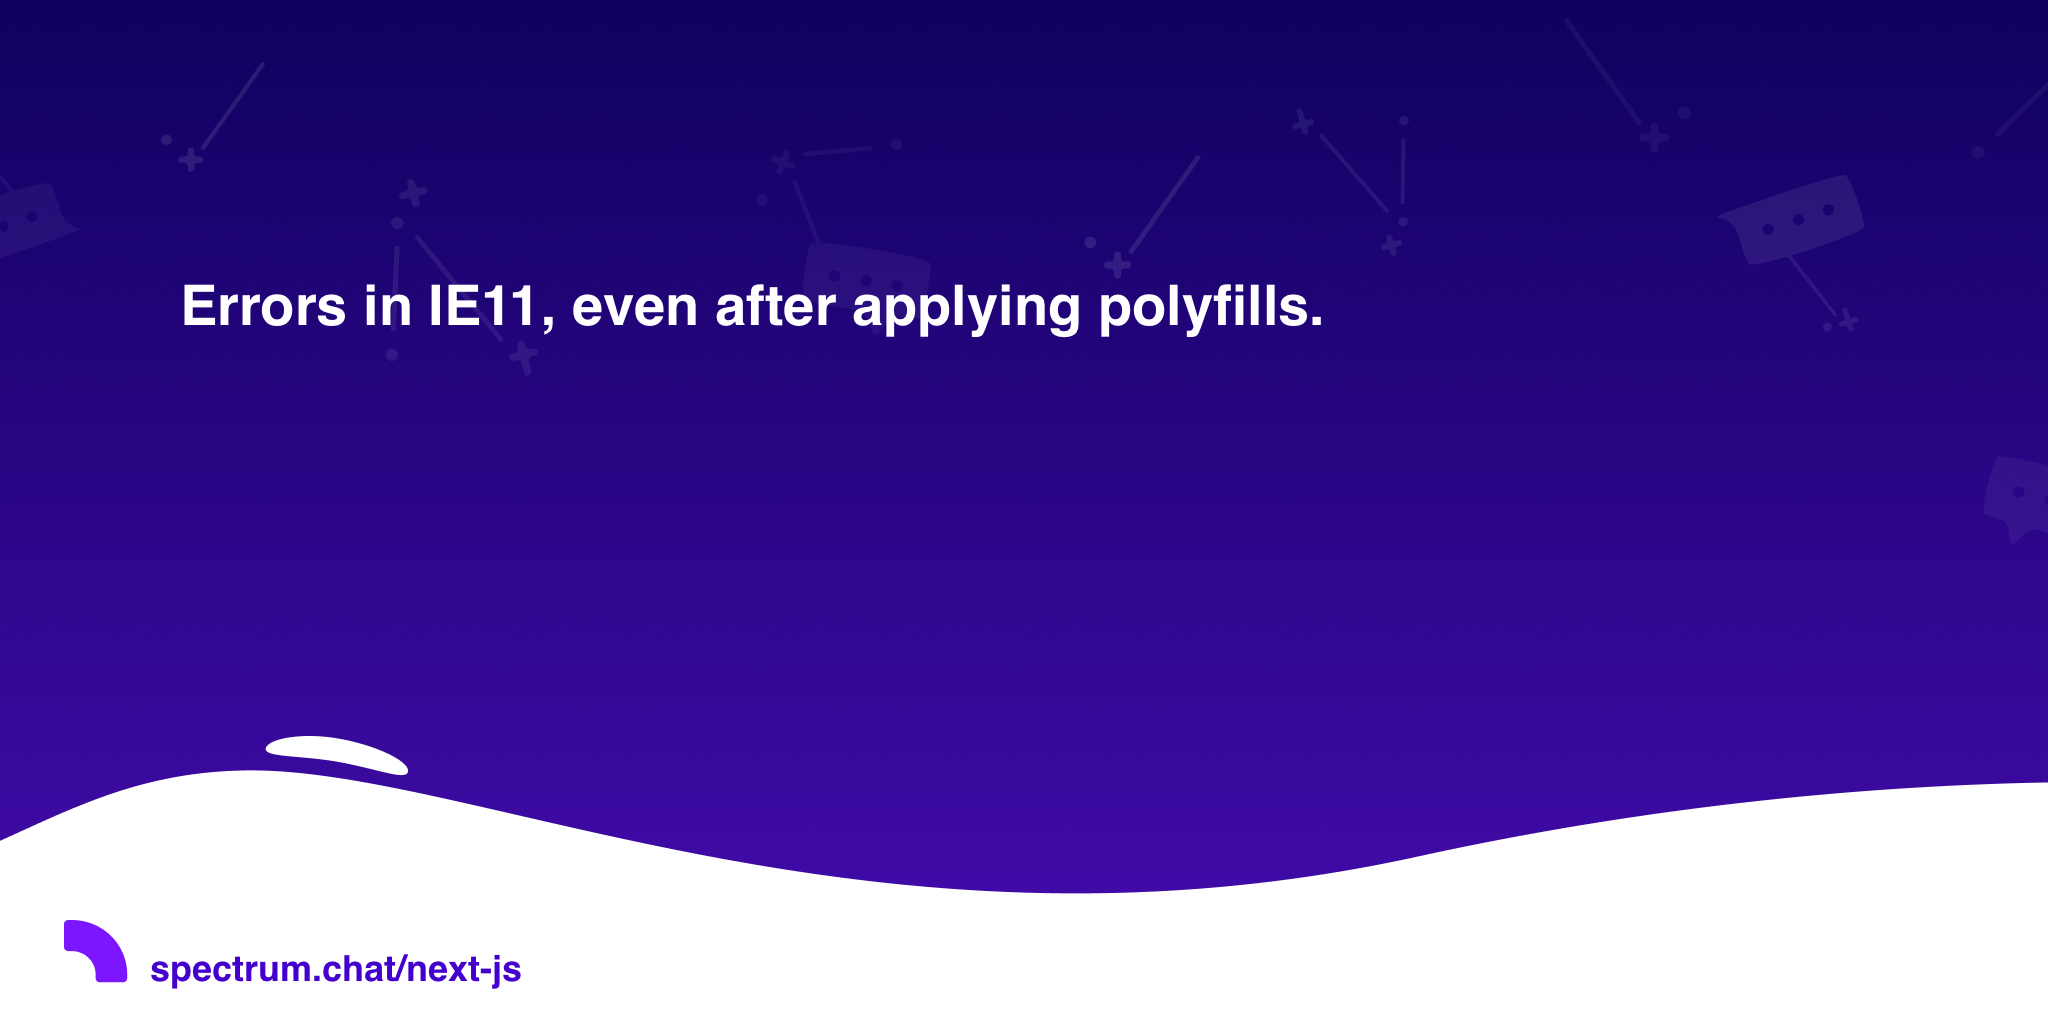 Errors in IE11, even after applying polyfills  · Next js